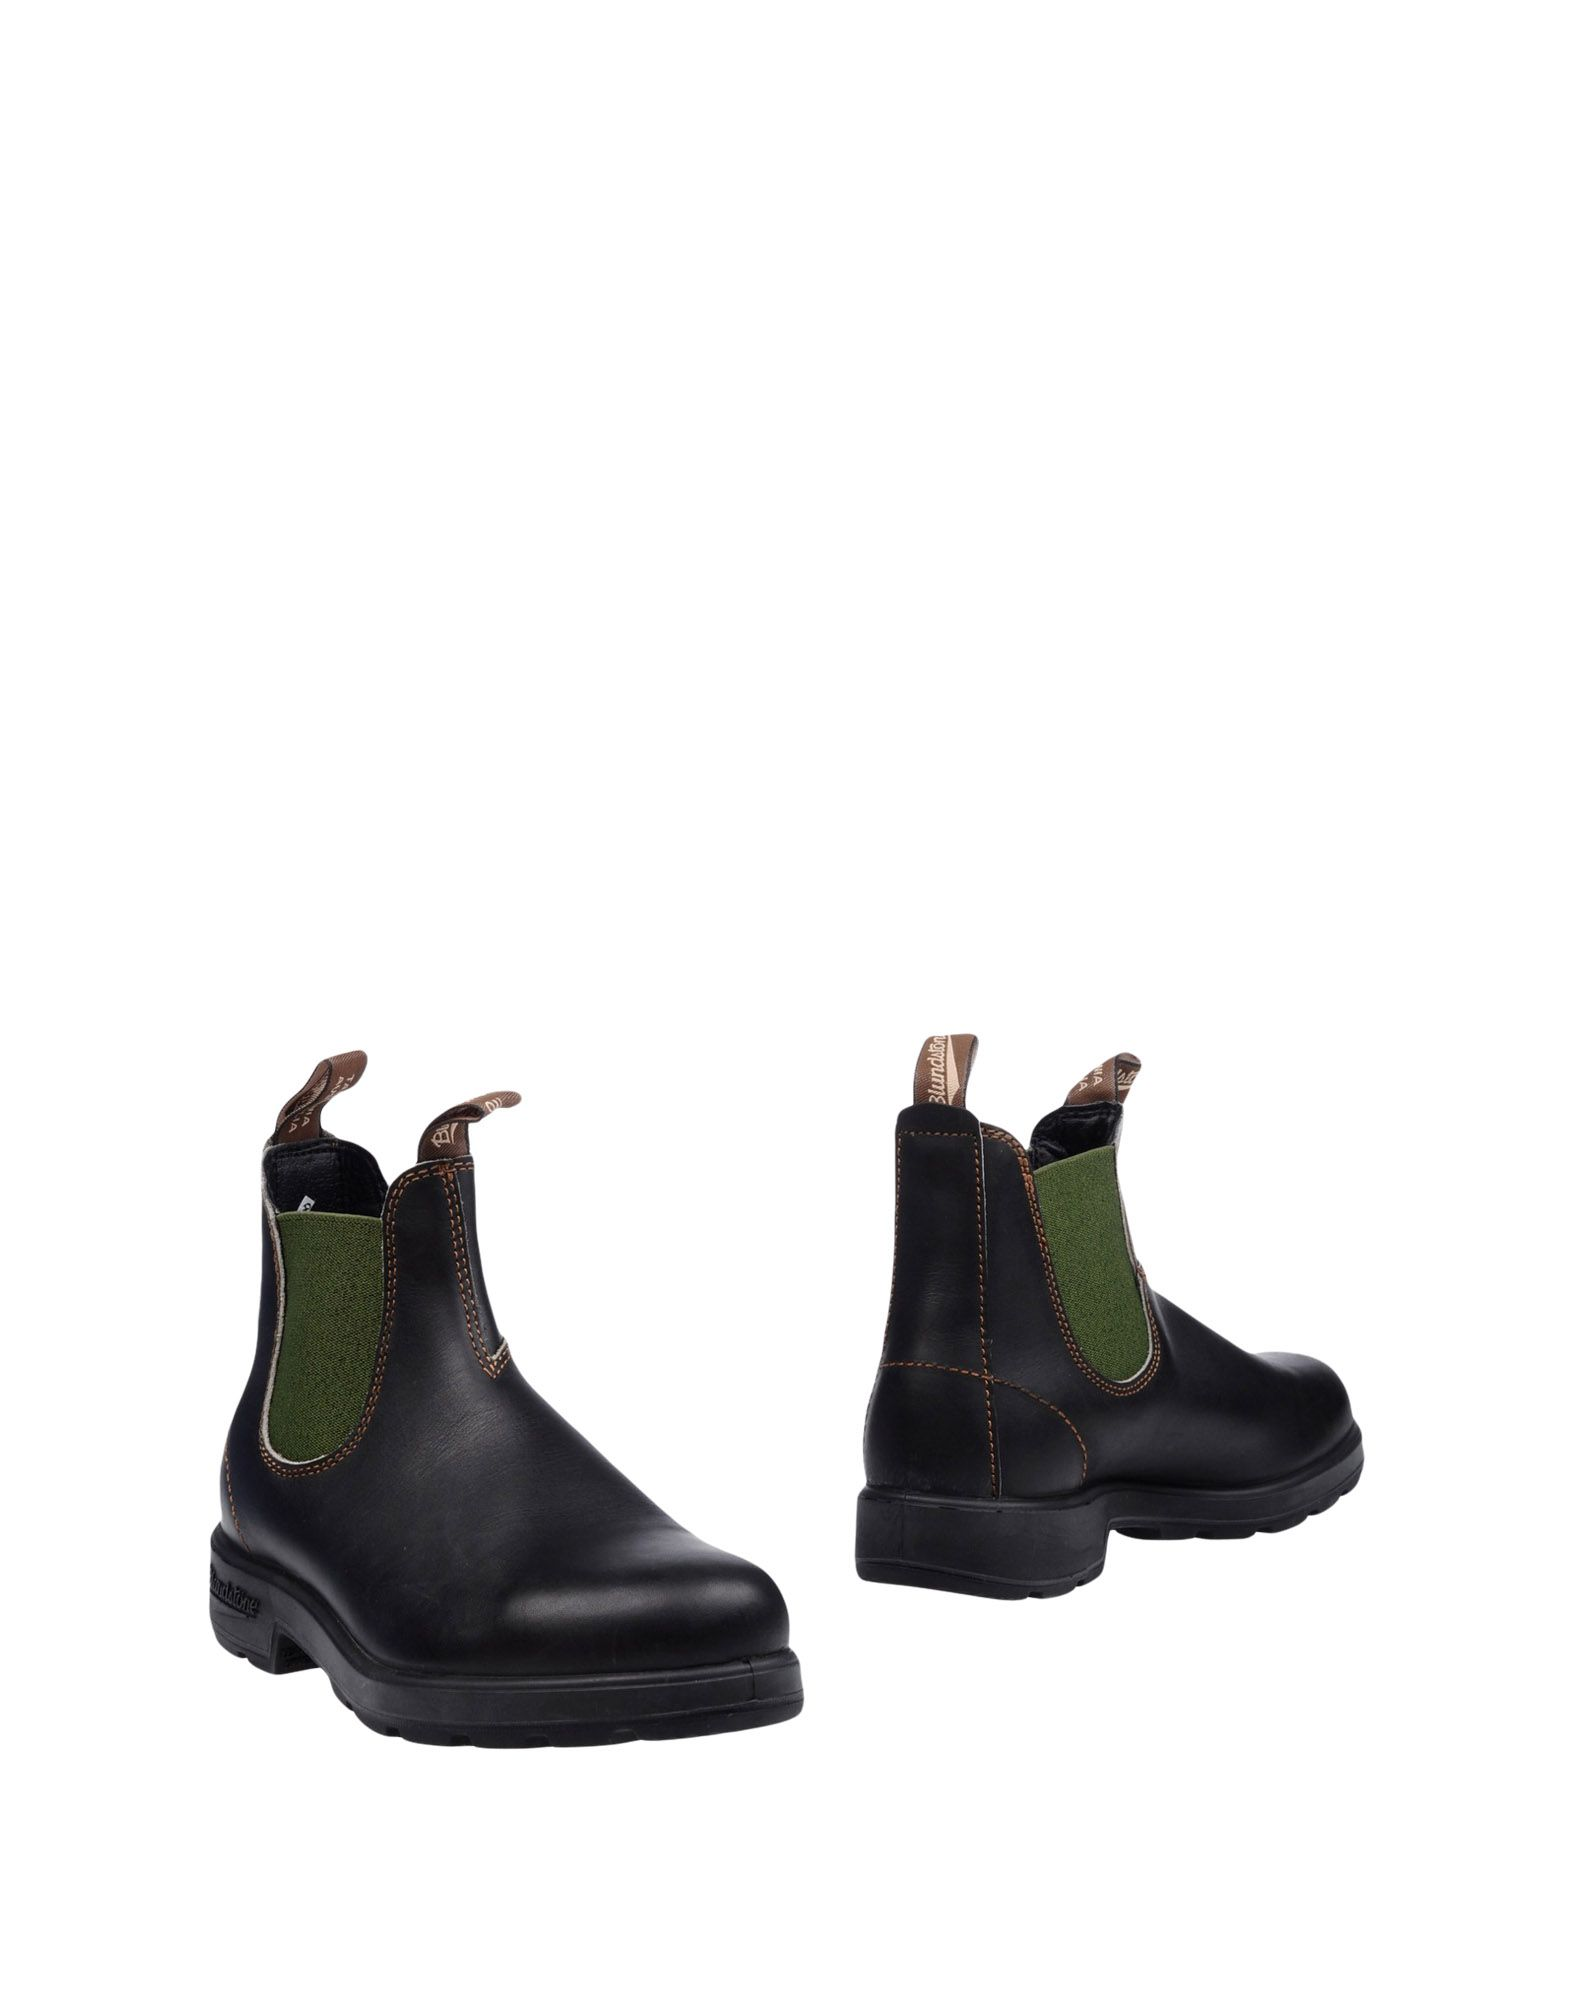 Bottine Blundstone Femme - Bottines Blundstone sur